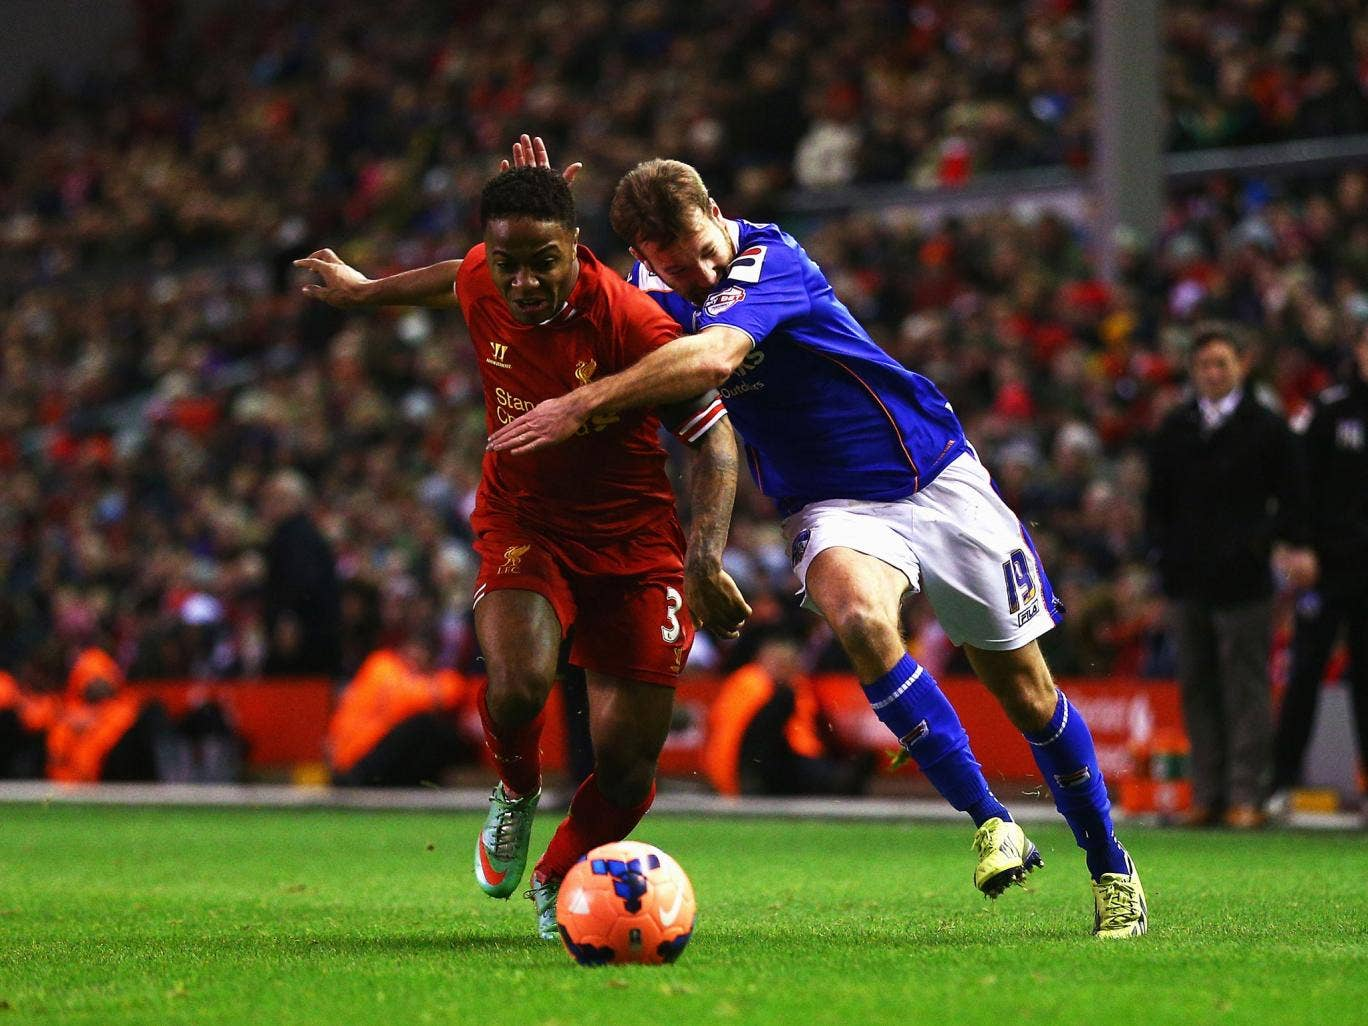 Liverpool winger Raheem Sterling has drawn praise from his teammate Kolo Toure for his recent impressive form